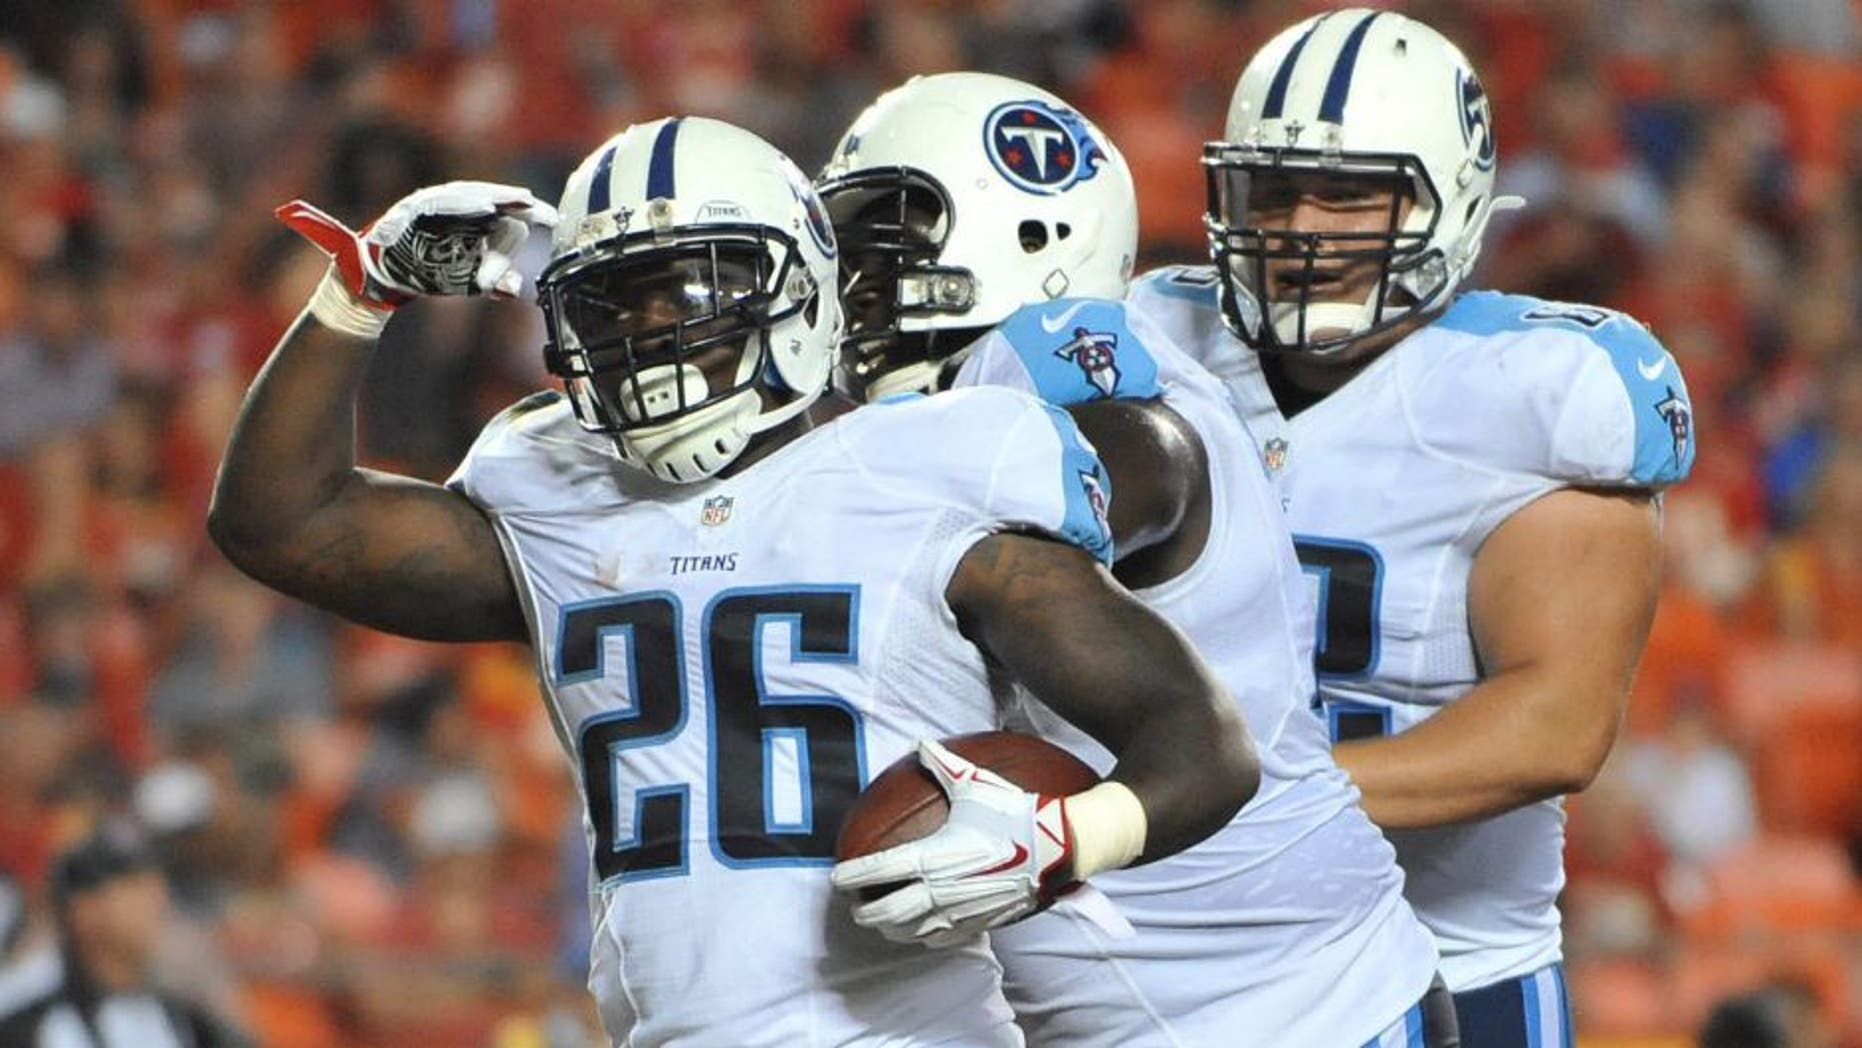 Aug 28, 2015; Kansas City, MO, USA; Tennessee Titans running back Antonio Andrews (26) celebrates after scoring a touchdown against the Kansas City Chiefs during the first half at Arrowhead Stadium. Mandatory Credit: Denny Medley-USA TODAY Sports